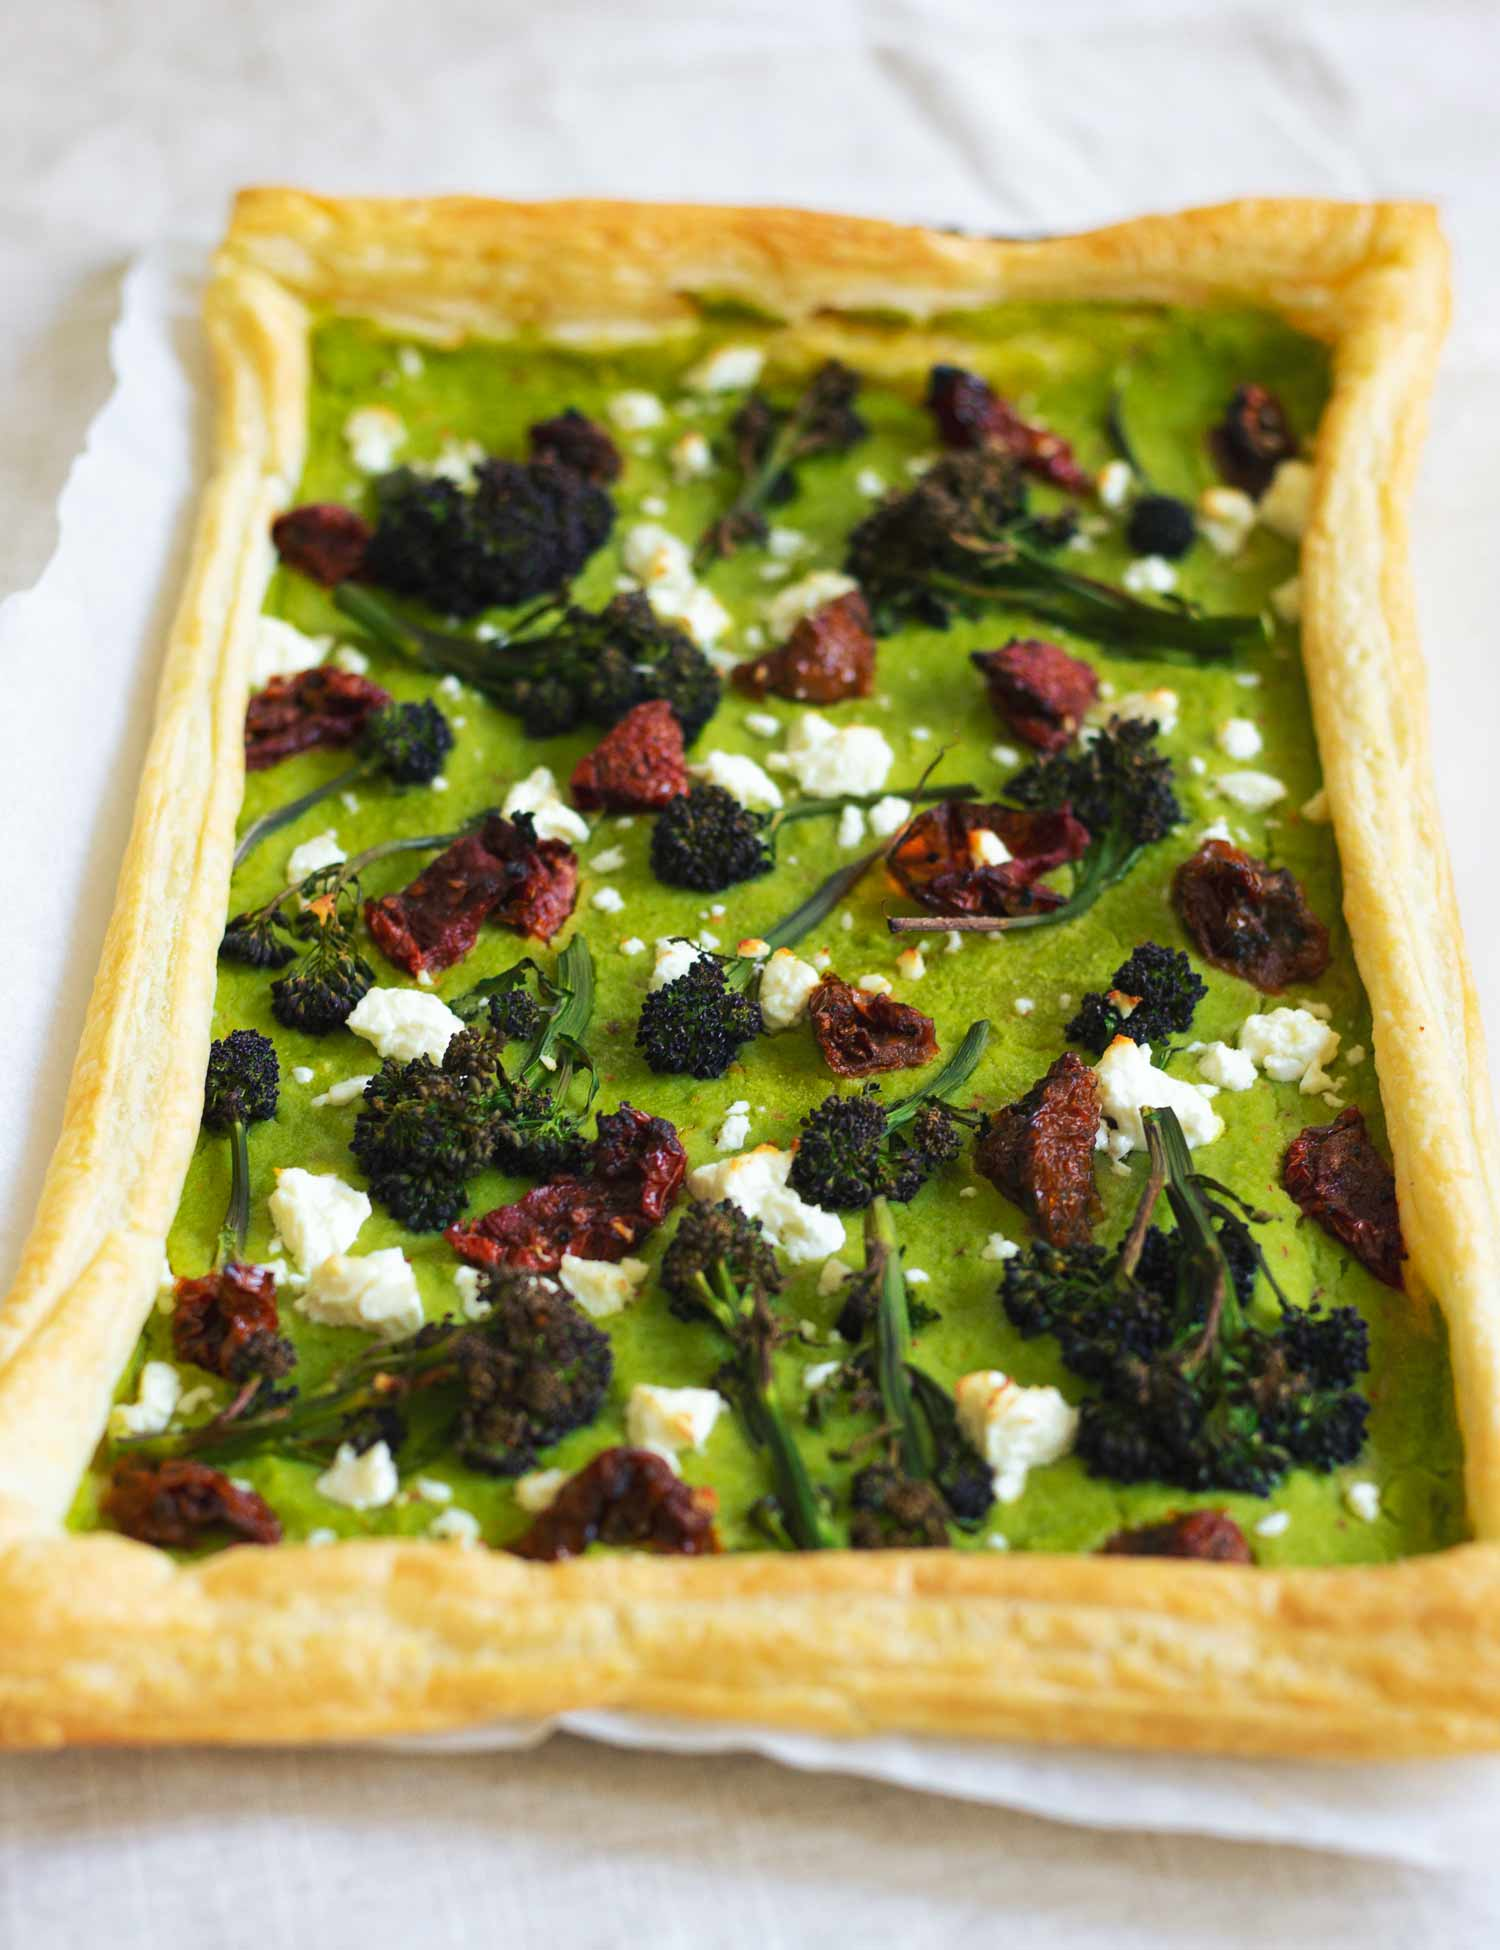 A tray with a rectangular tart topped with pea puree, broccoli, feta and sundried tomato